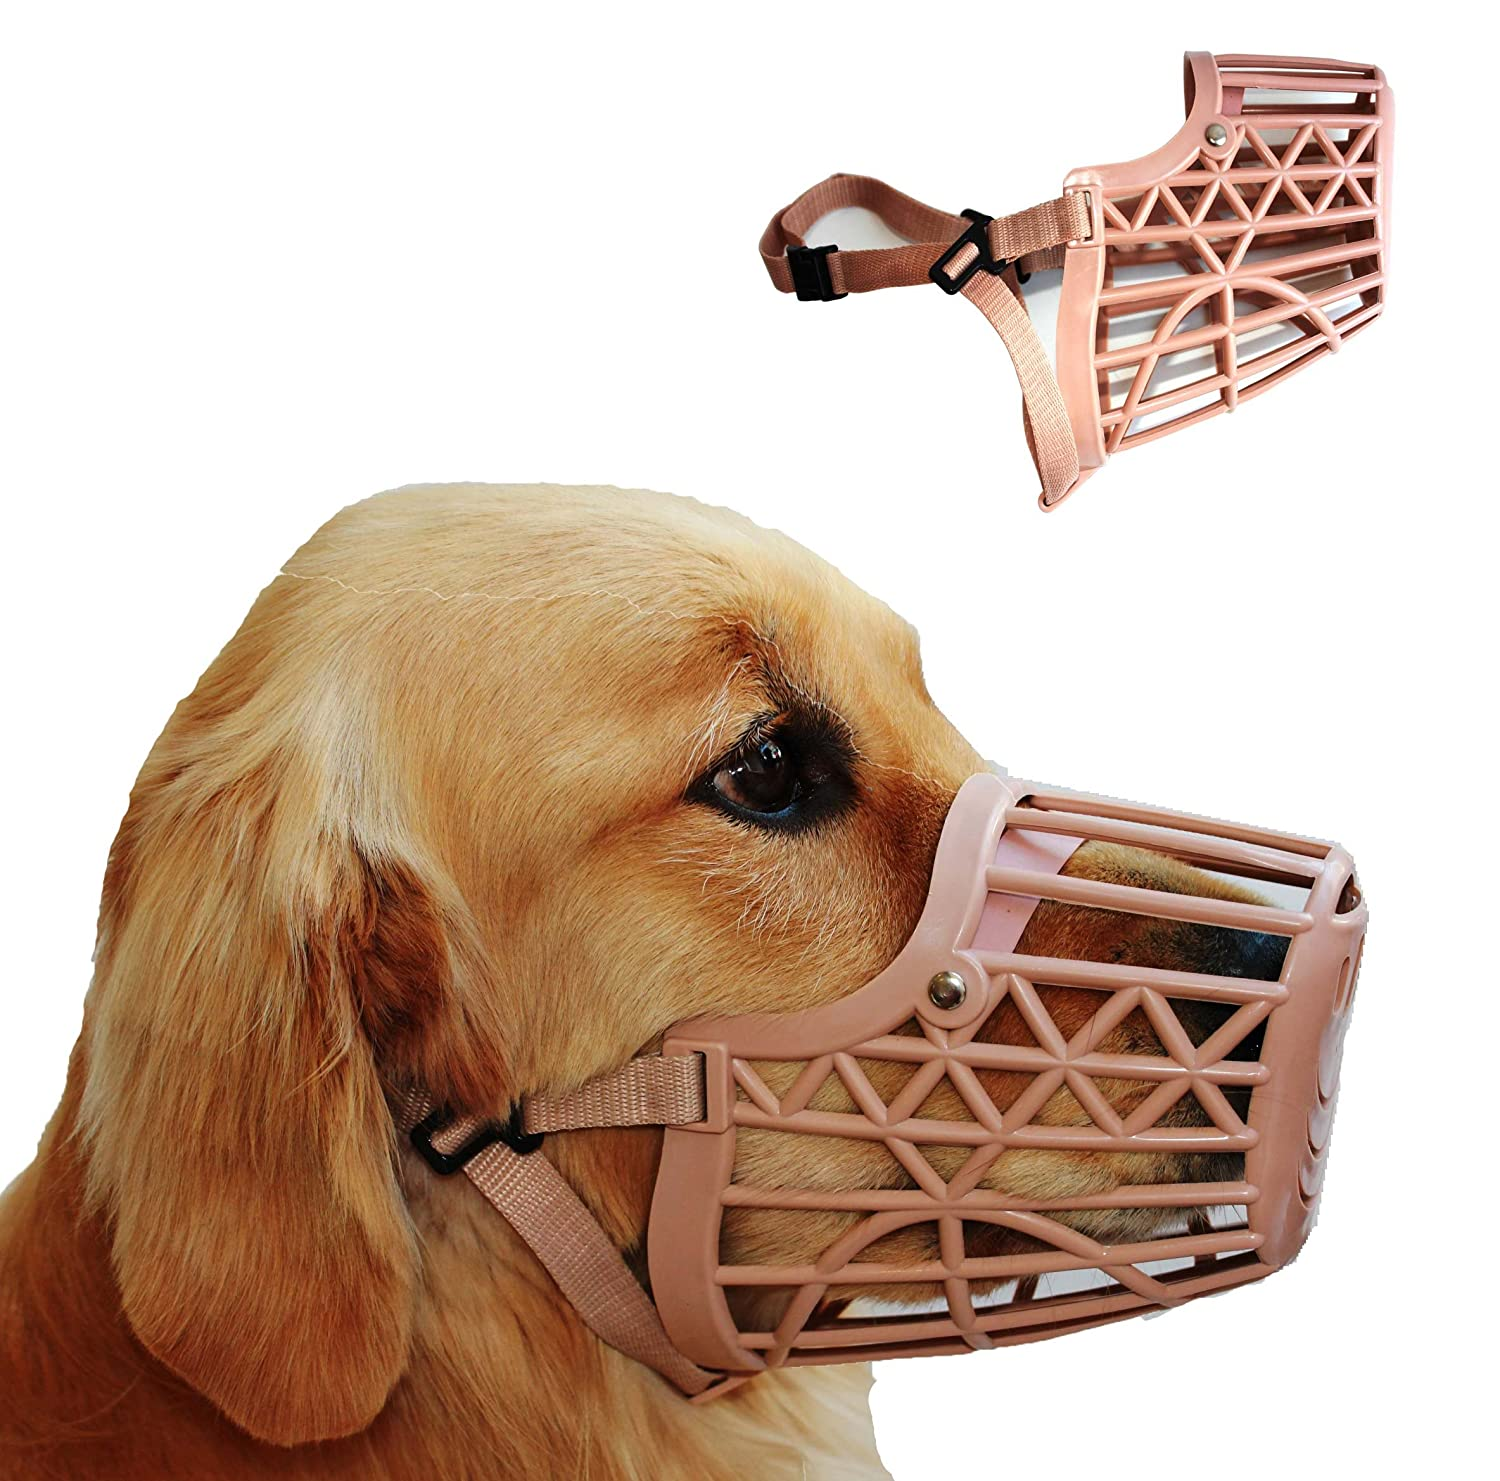 Amazon.com : Basket Cage Dog Muzzle Size 3 - SMALL - Adjustable Straps -  BEIGE, by Downtown Pet Supply : Dog Muzzle For Small Dogs : Pet Supplies